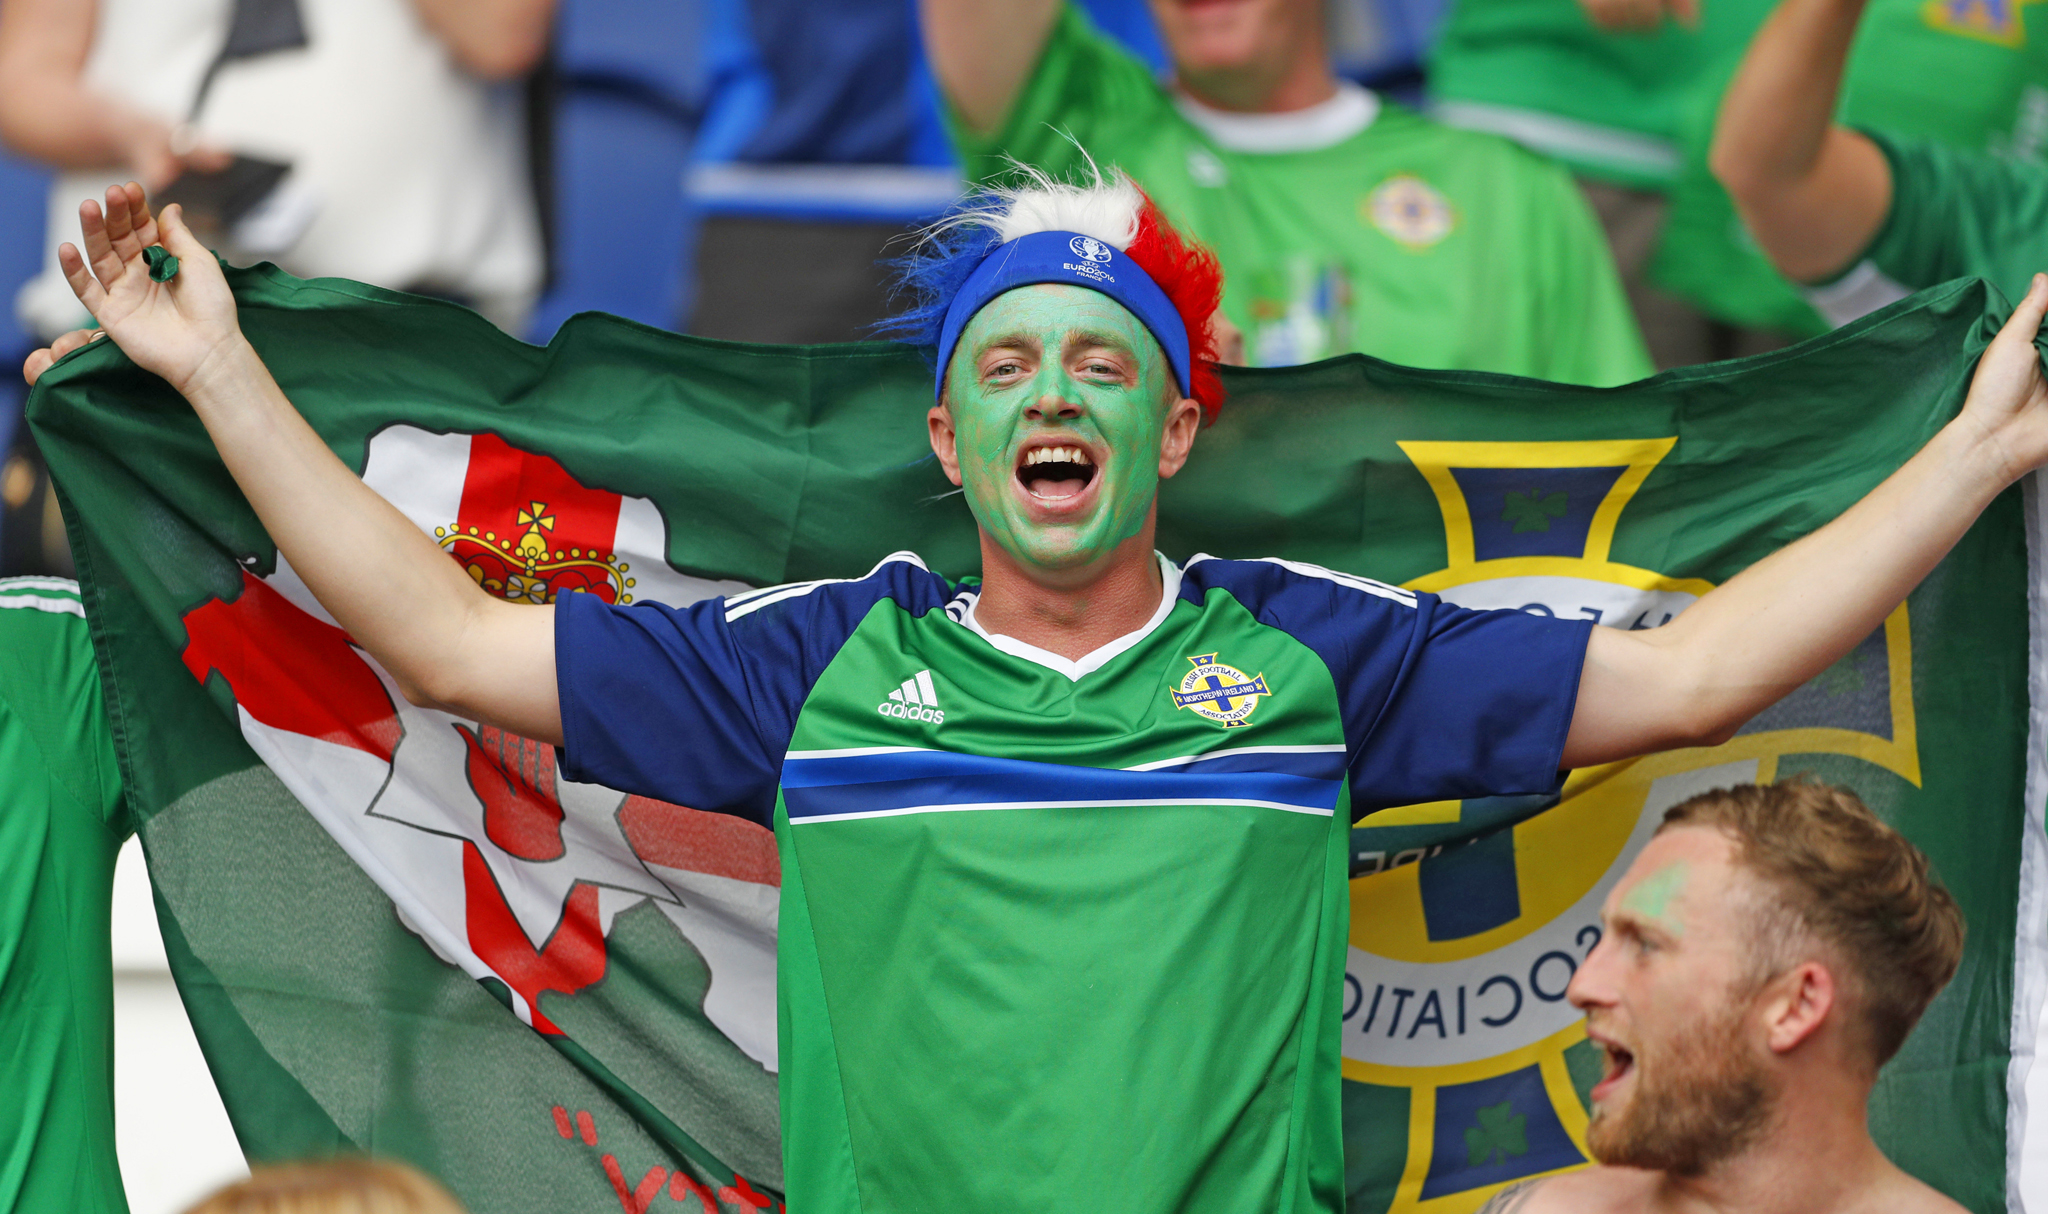 Football Soccer - Northern Ireland v Germany - EURO 2016 - Group C - Parc des Princes, Paris, France - 21/6/16 Northern Ireland fan before the match